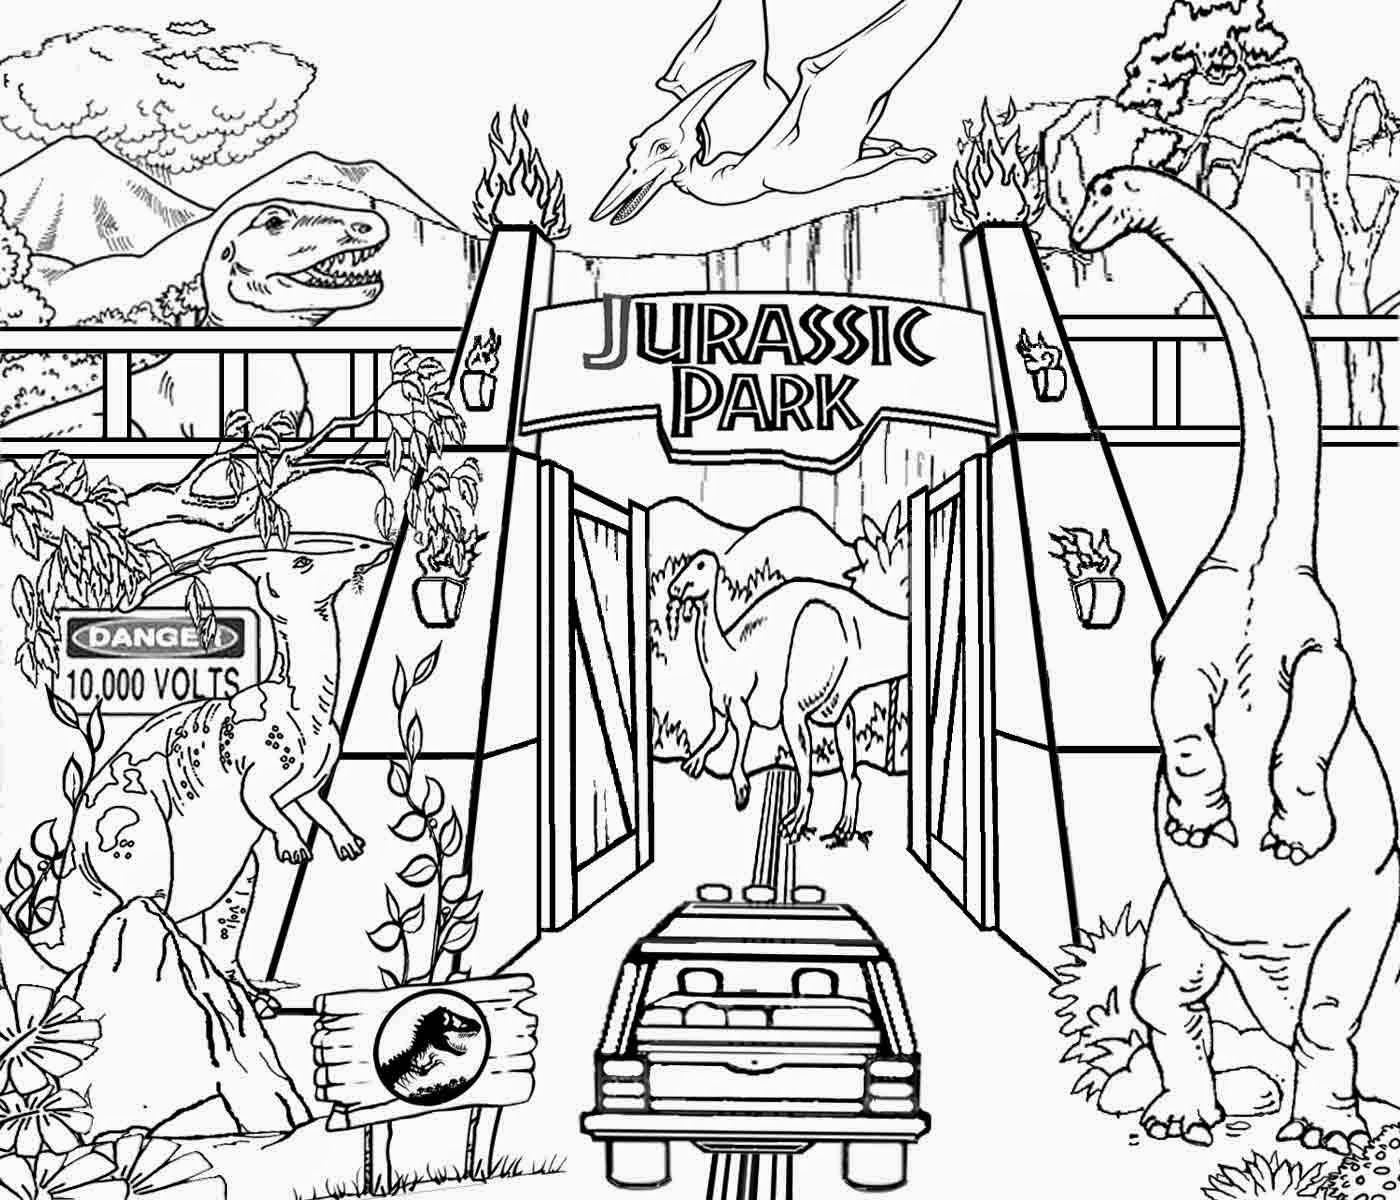 Real looking dinosaur coloring pages - Detailed Printable High Resolution Free Clipart Jurassic Park Dinosaur Coloring Pages For Older Kids